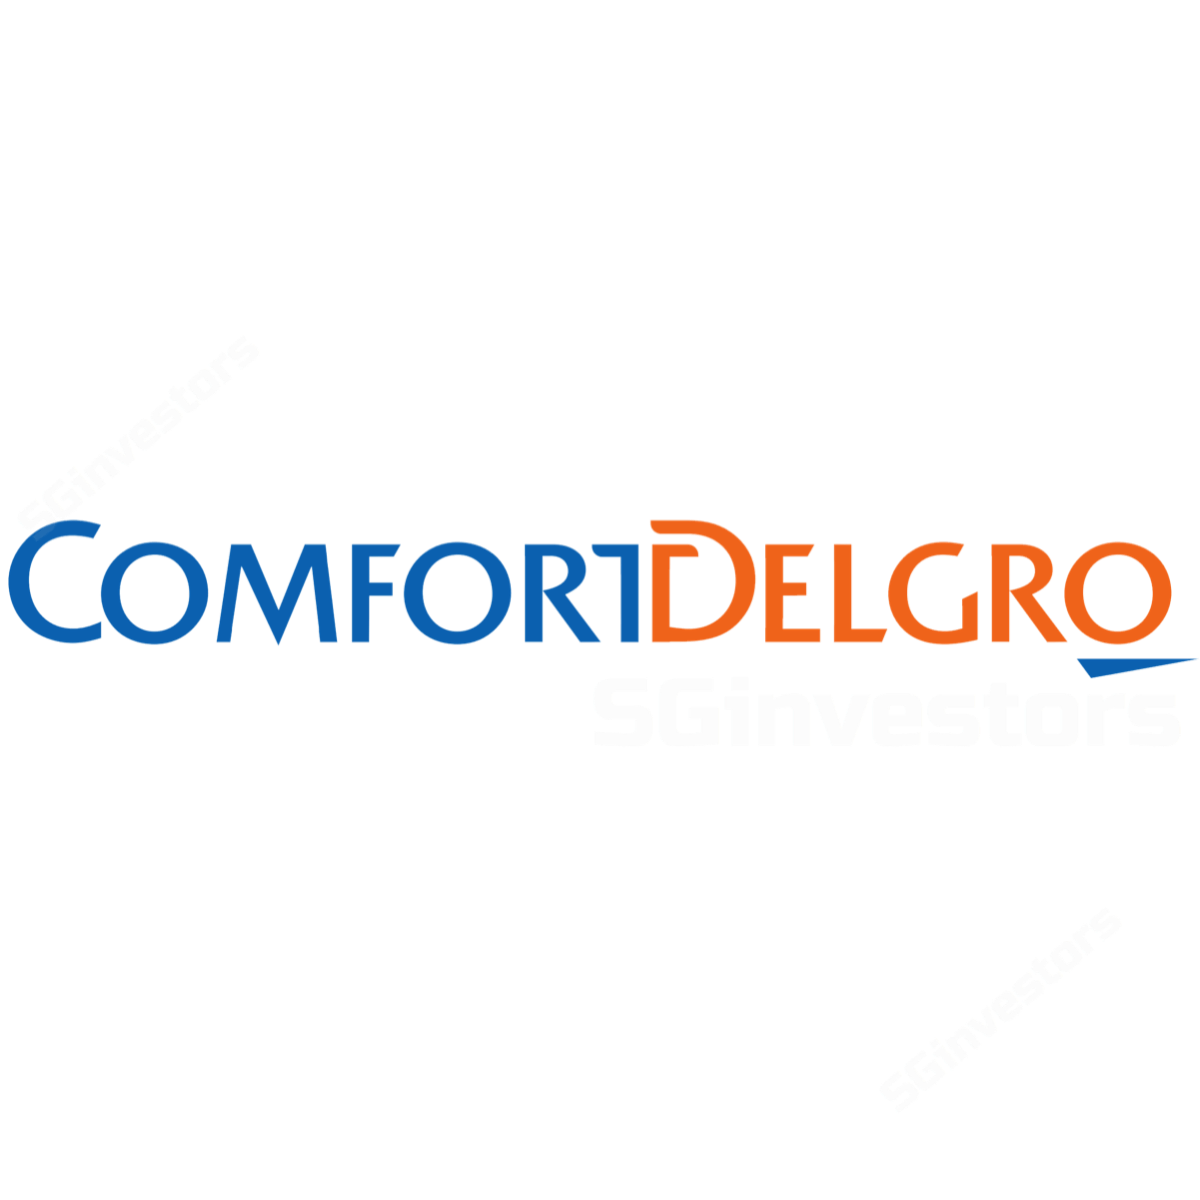 ComfortDelGro - OCBC Investment 2017-02-13: Higher dividend payout for FY16